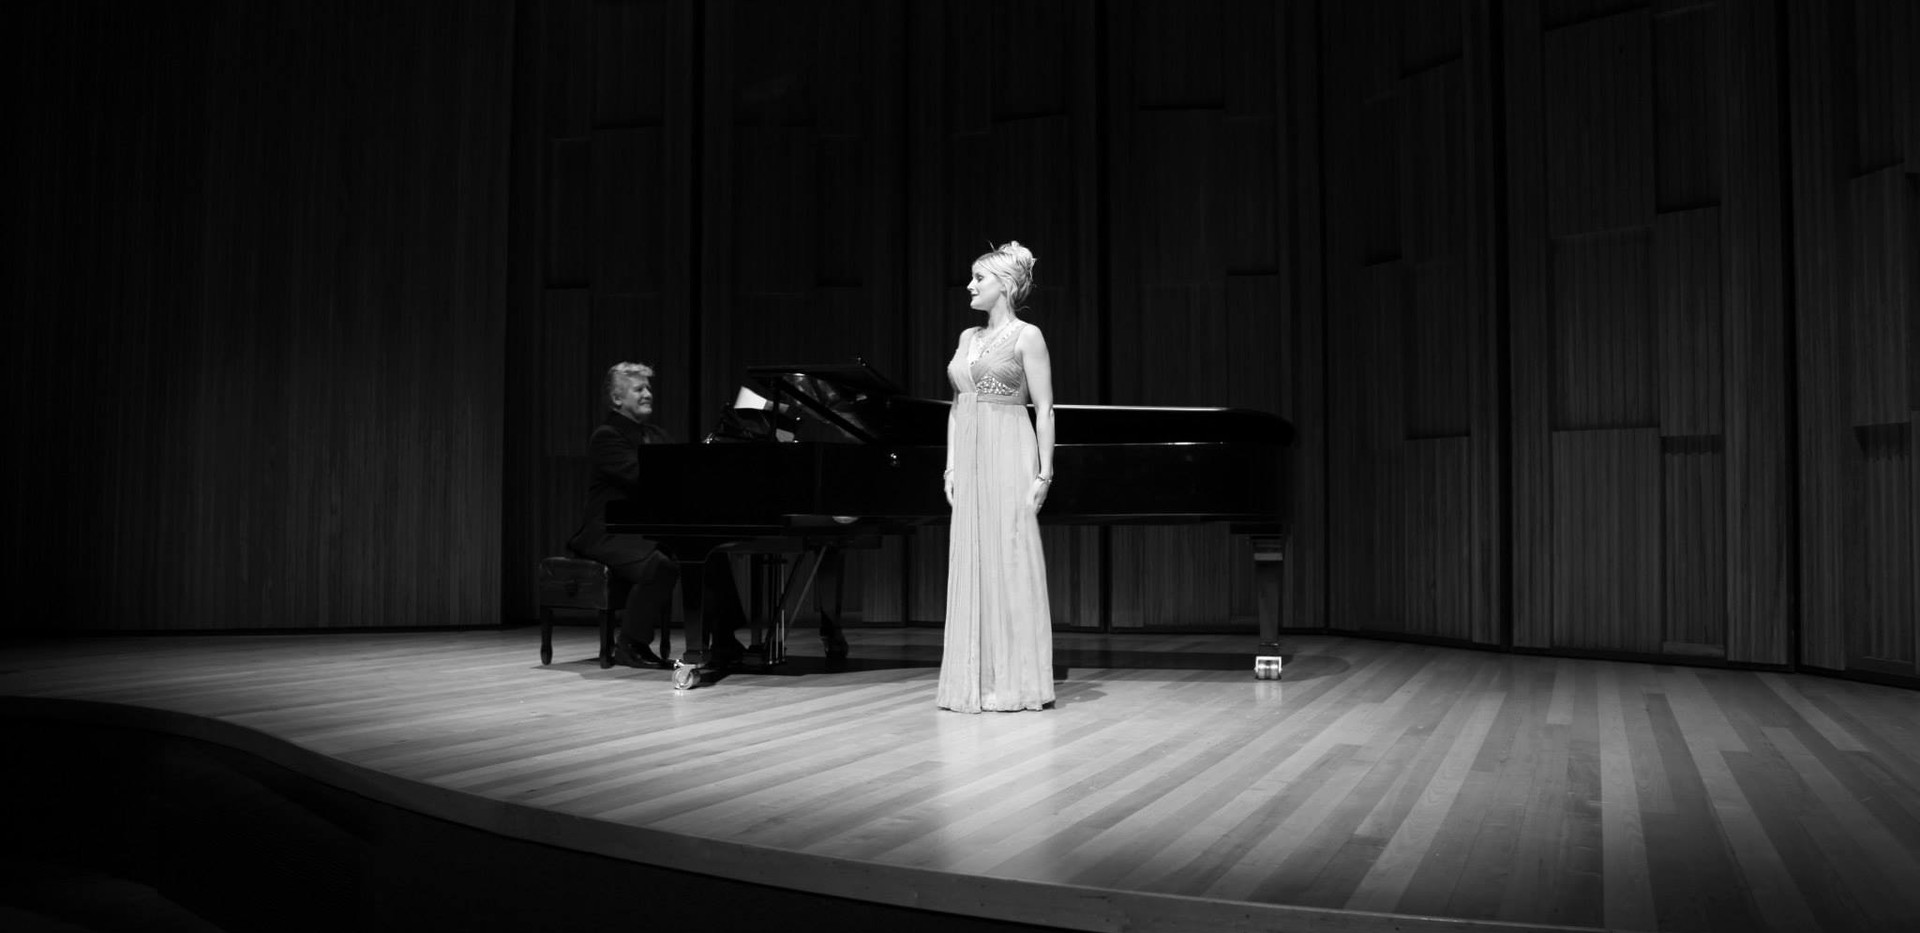 Performing with David Harper, pianist - Napier